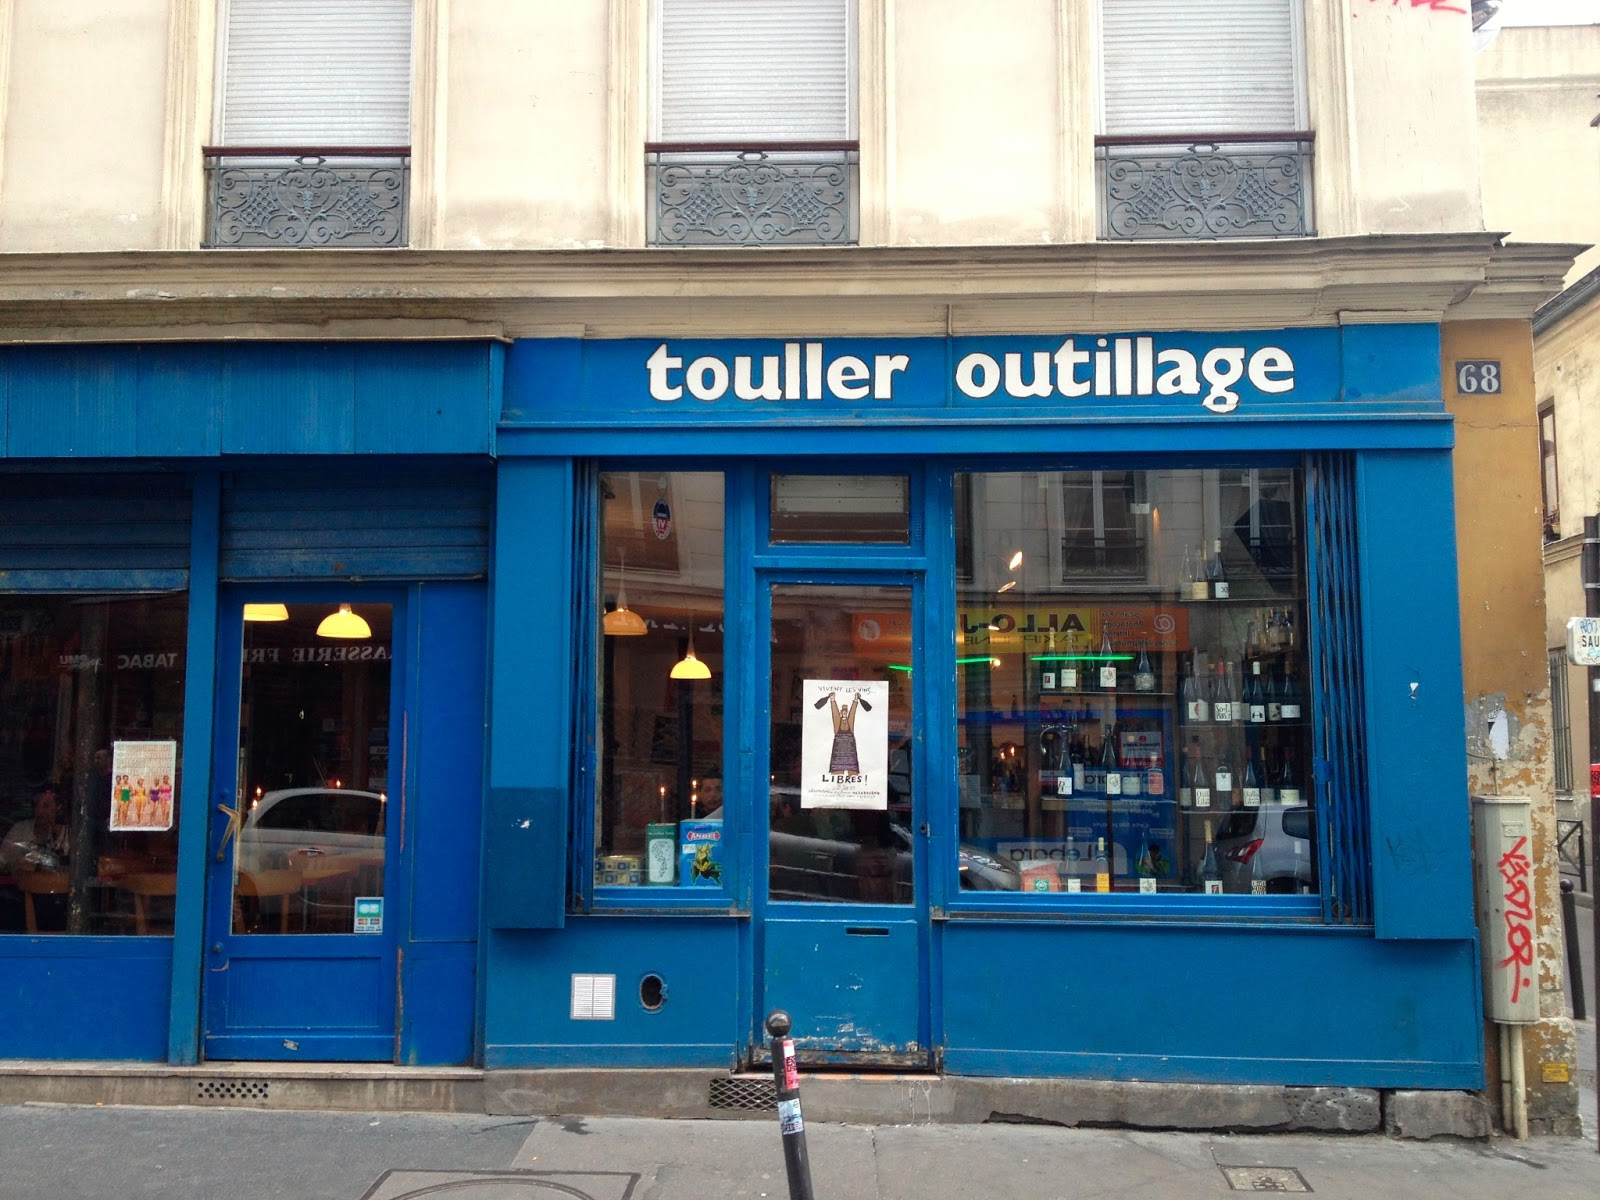 Touller Outillage - Cave, Bar vins Tapas - Facebook